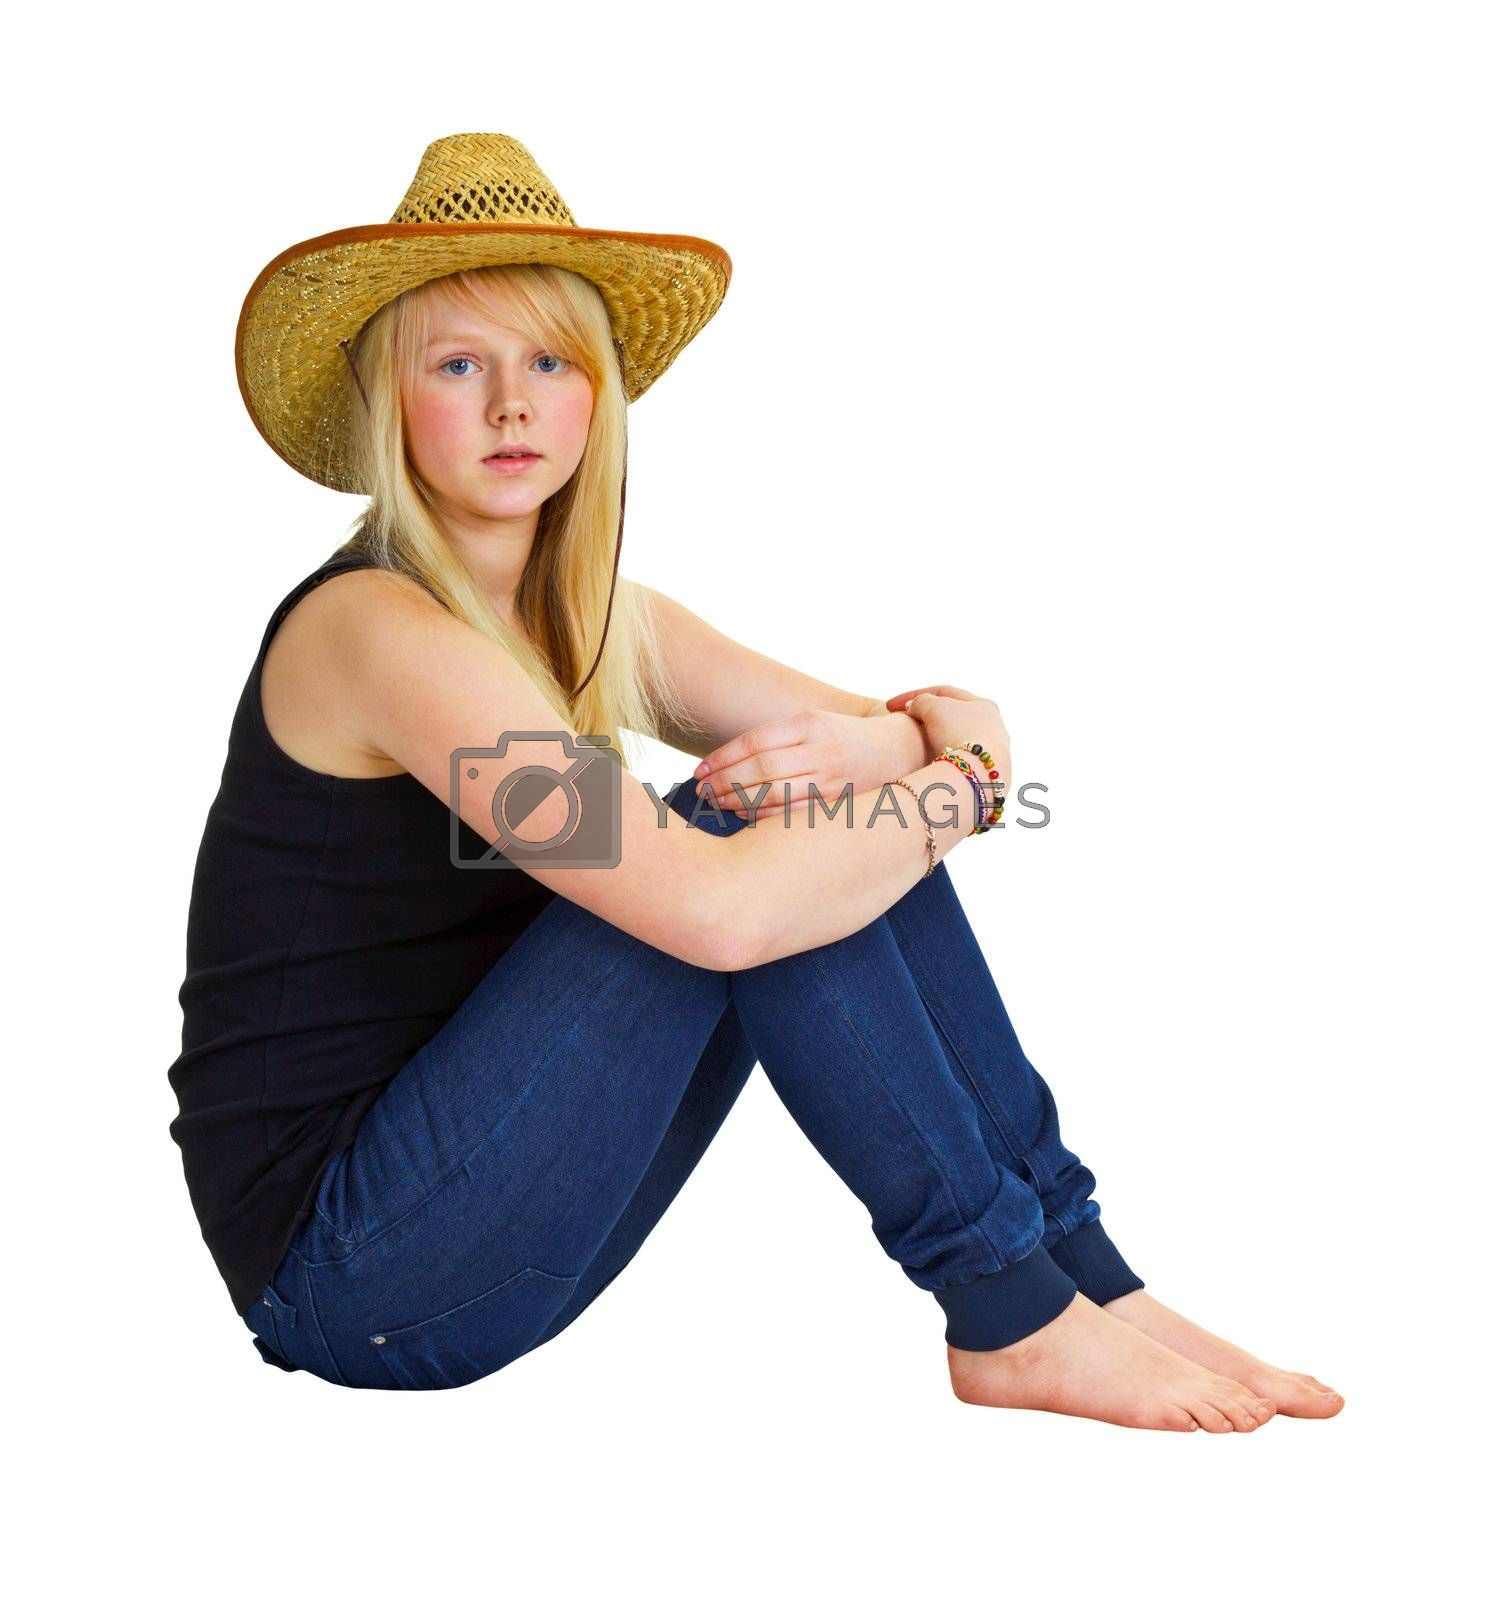 A young girl in a farmer dress sitting isolated on white background